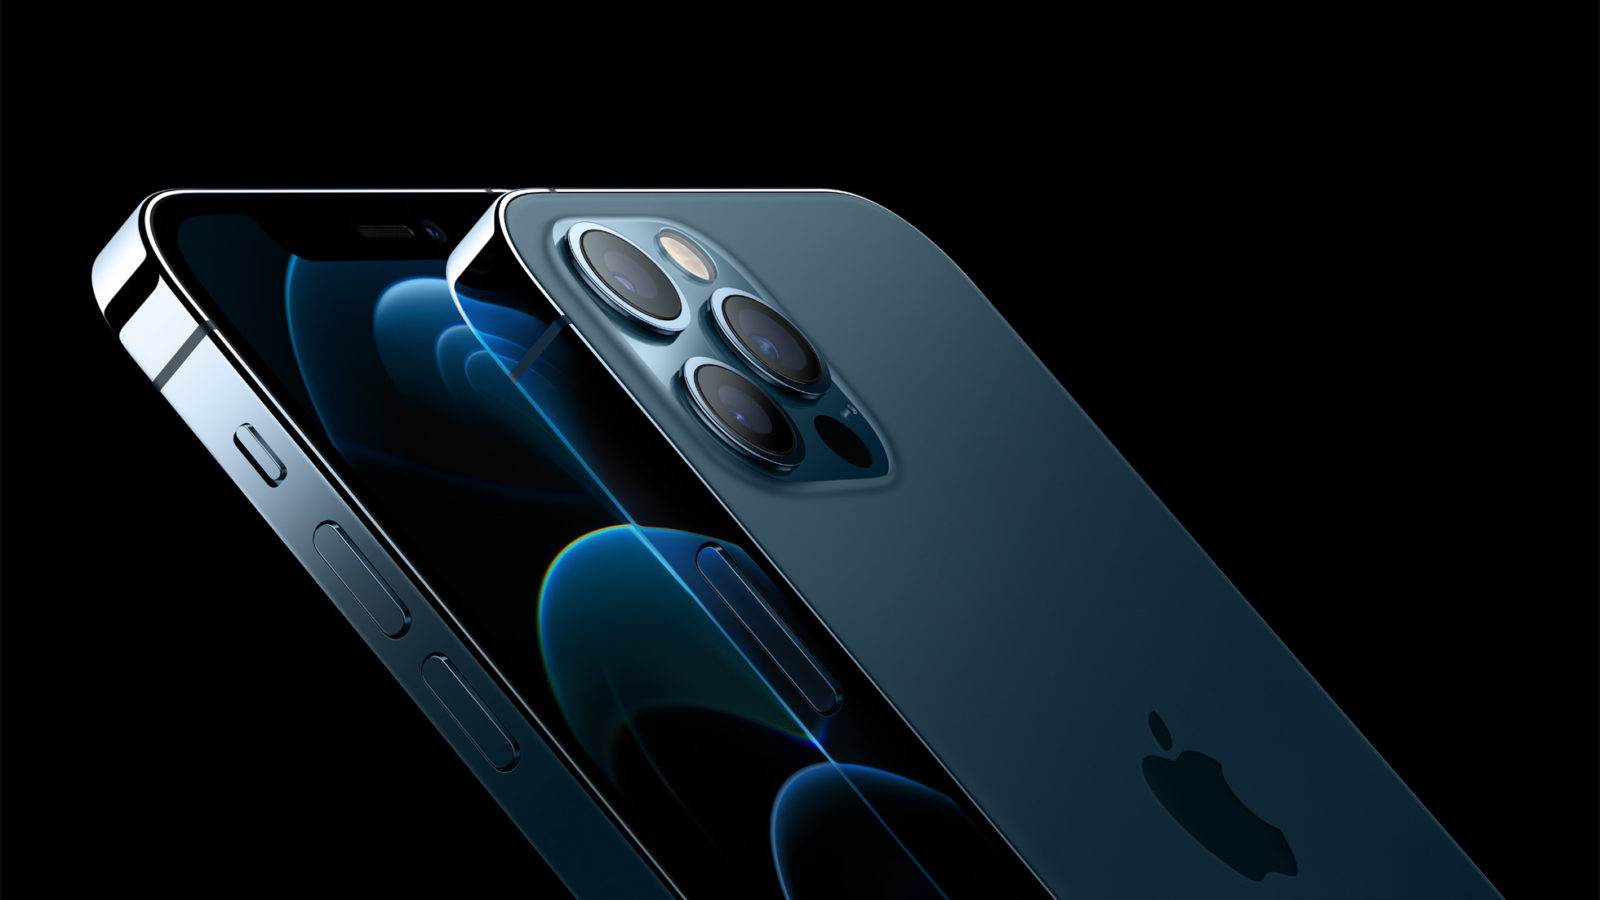 iPhone 12 Pro review: Here's everything we know about Apple's latest 5G smartphone